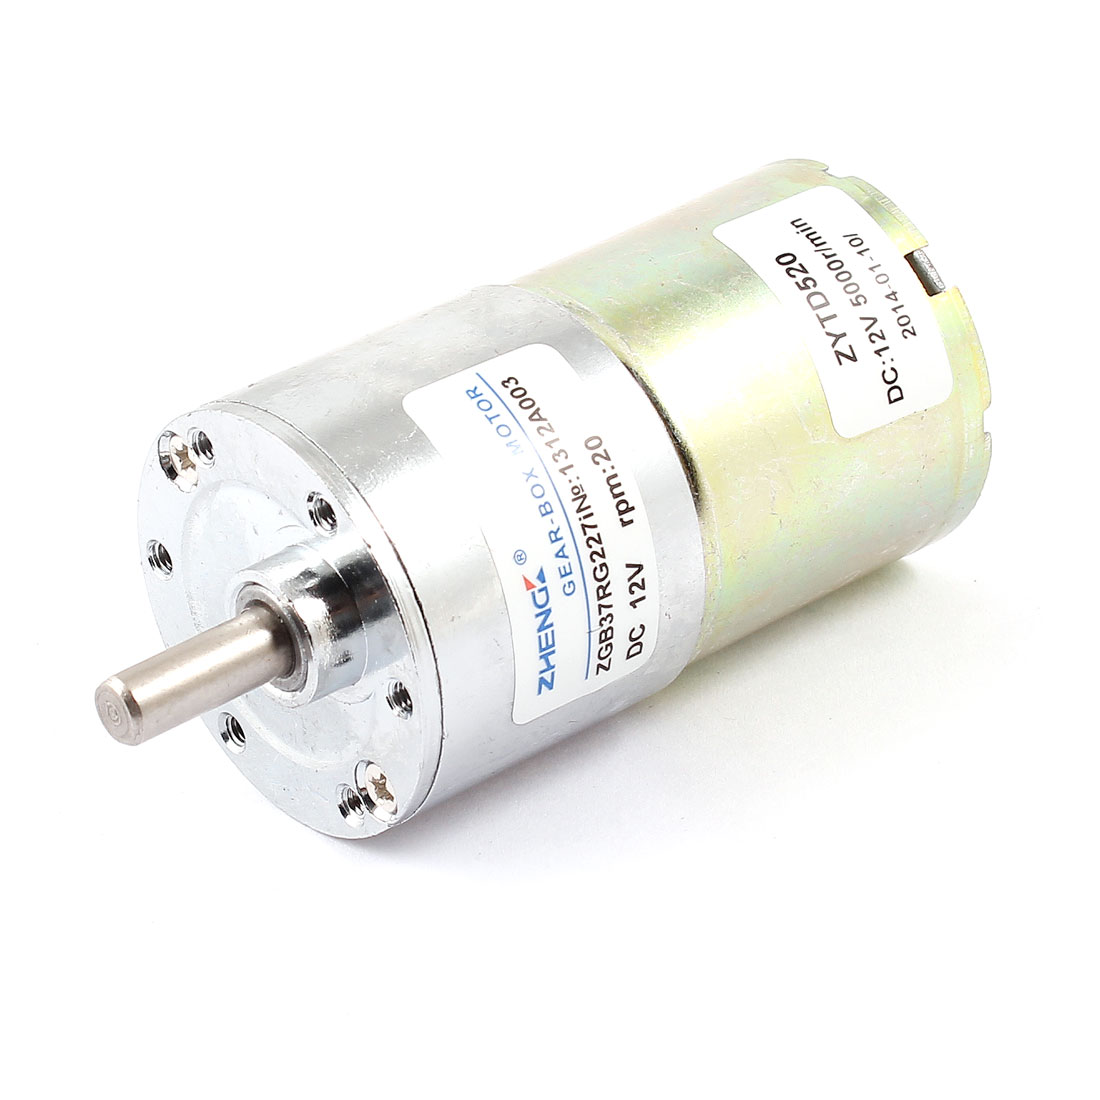 Shaft Diameter 6mm x 15mm DC 12V 20 RPM Speed 6mm Dia Shaft Magnetic Gearbox Electric Geared Motor 37mm x 86mm danish design iv15q702slbk